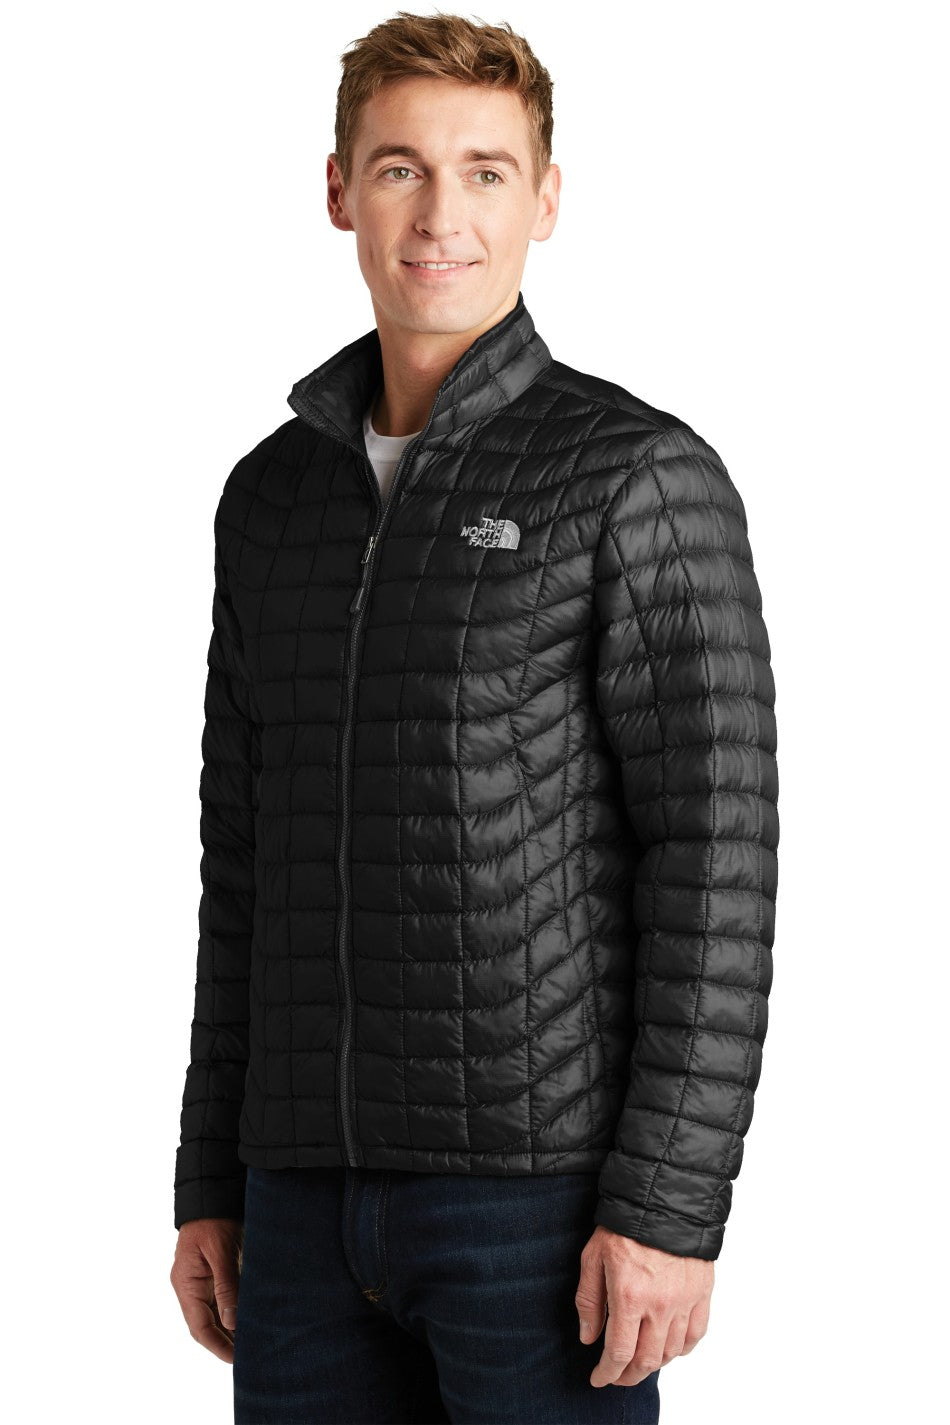 SANMAR THE NORTH FACE® MEN'S THERMOBALL™ TREKKER JACKET